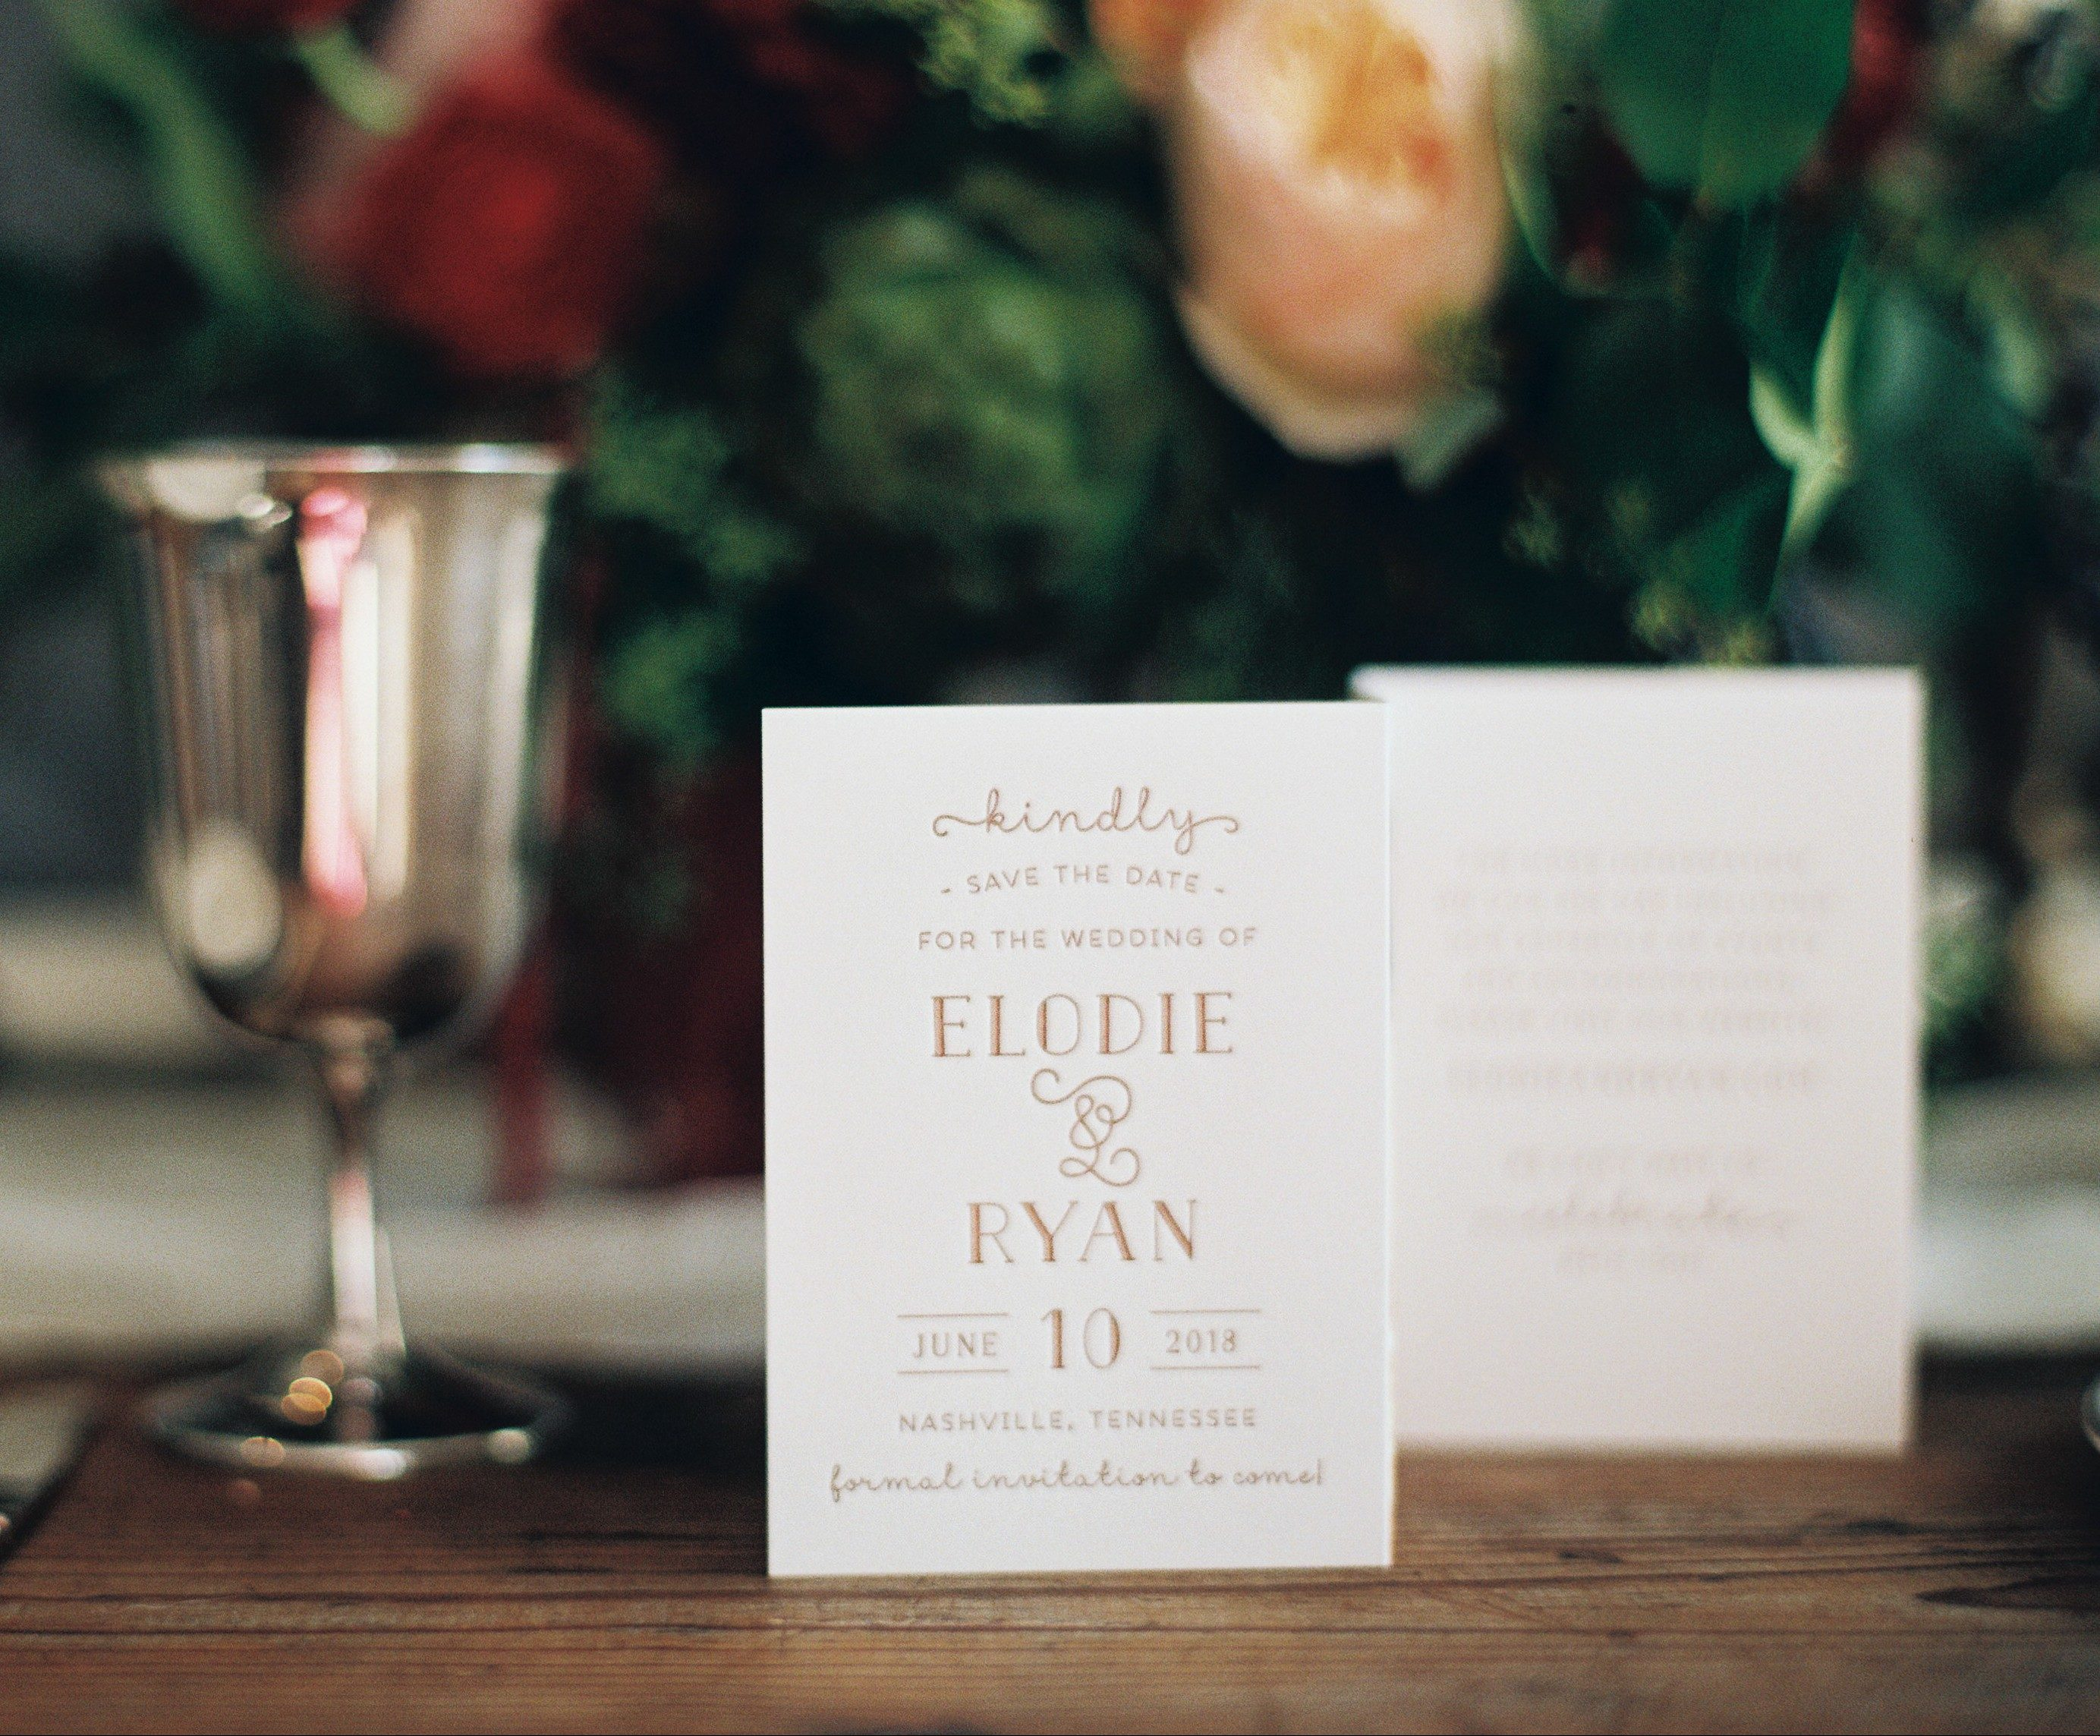 Letterpress + foil stamped save the dates from Bella Figura